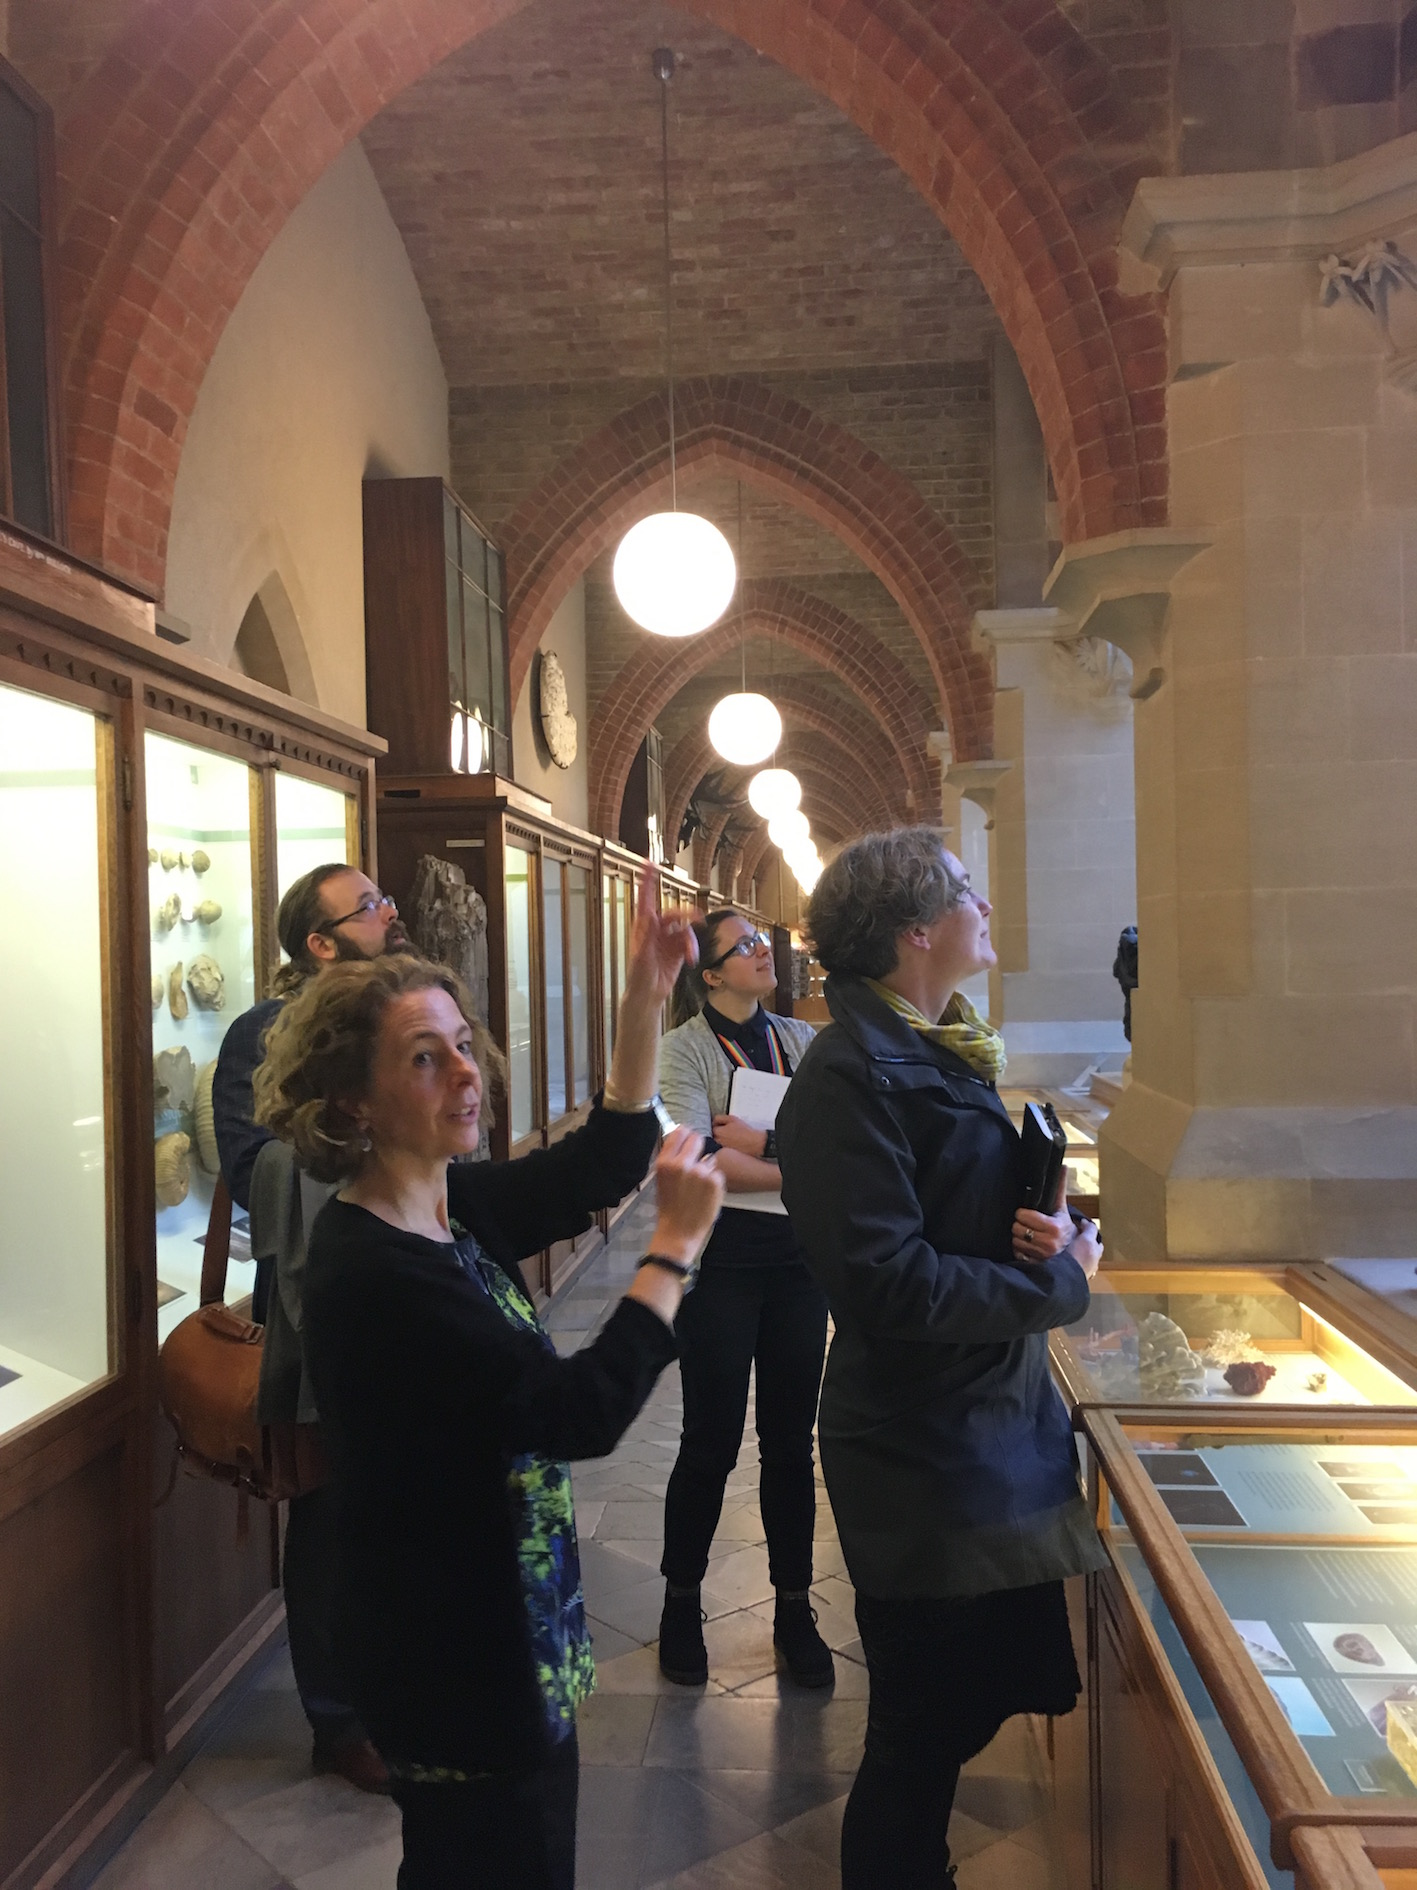 Janet Stott, Madeline Slaven, Daryl Green, and Kelly Richards casting their eyes on the wonderful building which houses the Oxford University Museum of Natural History.